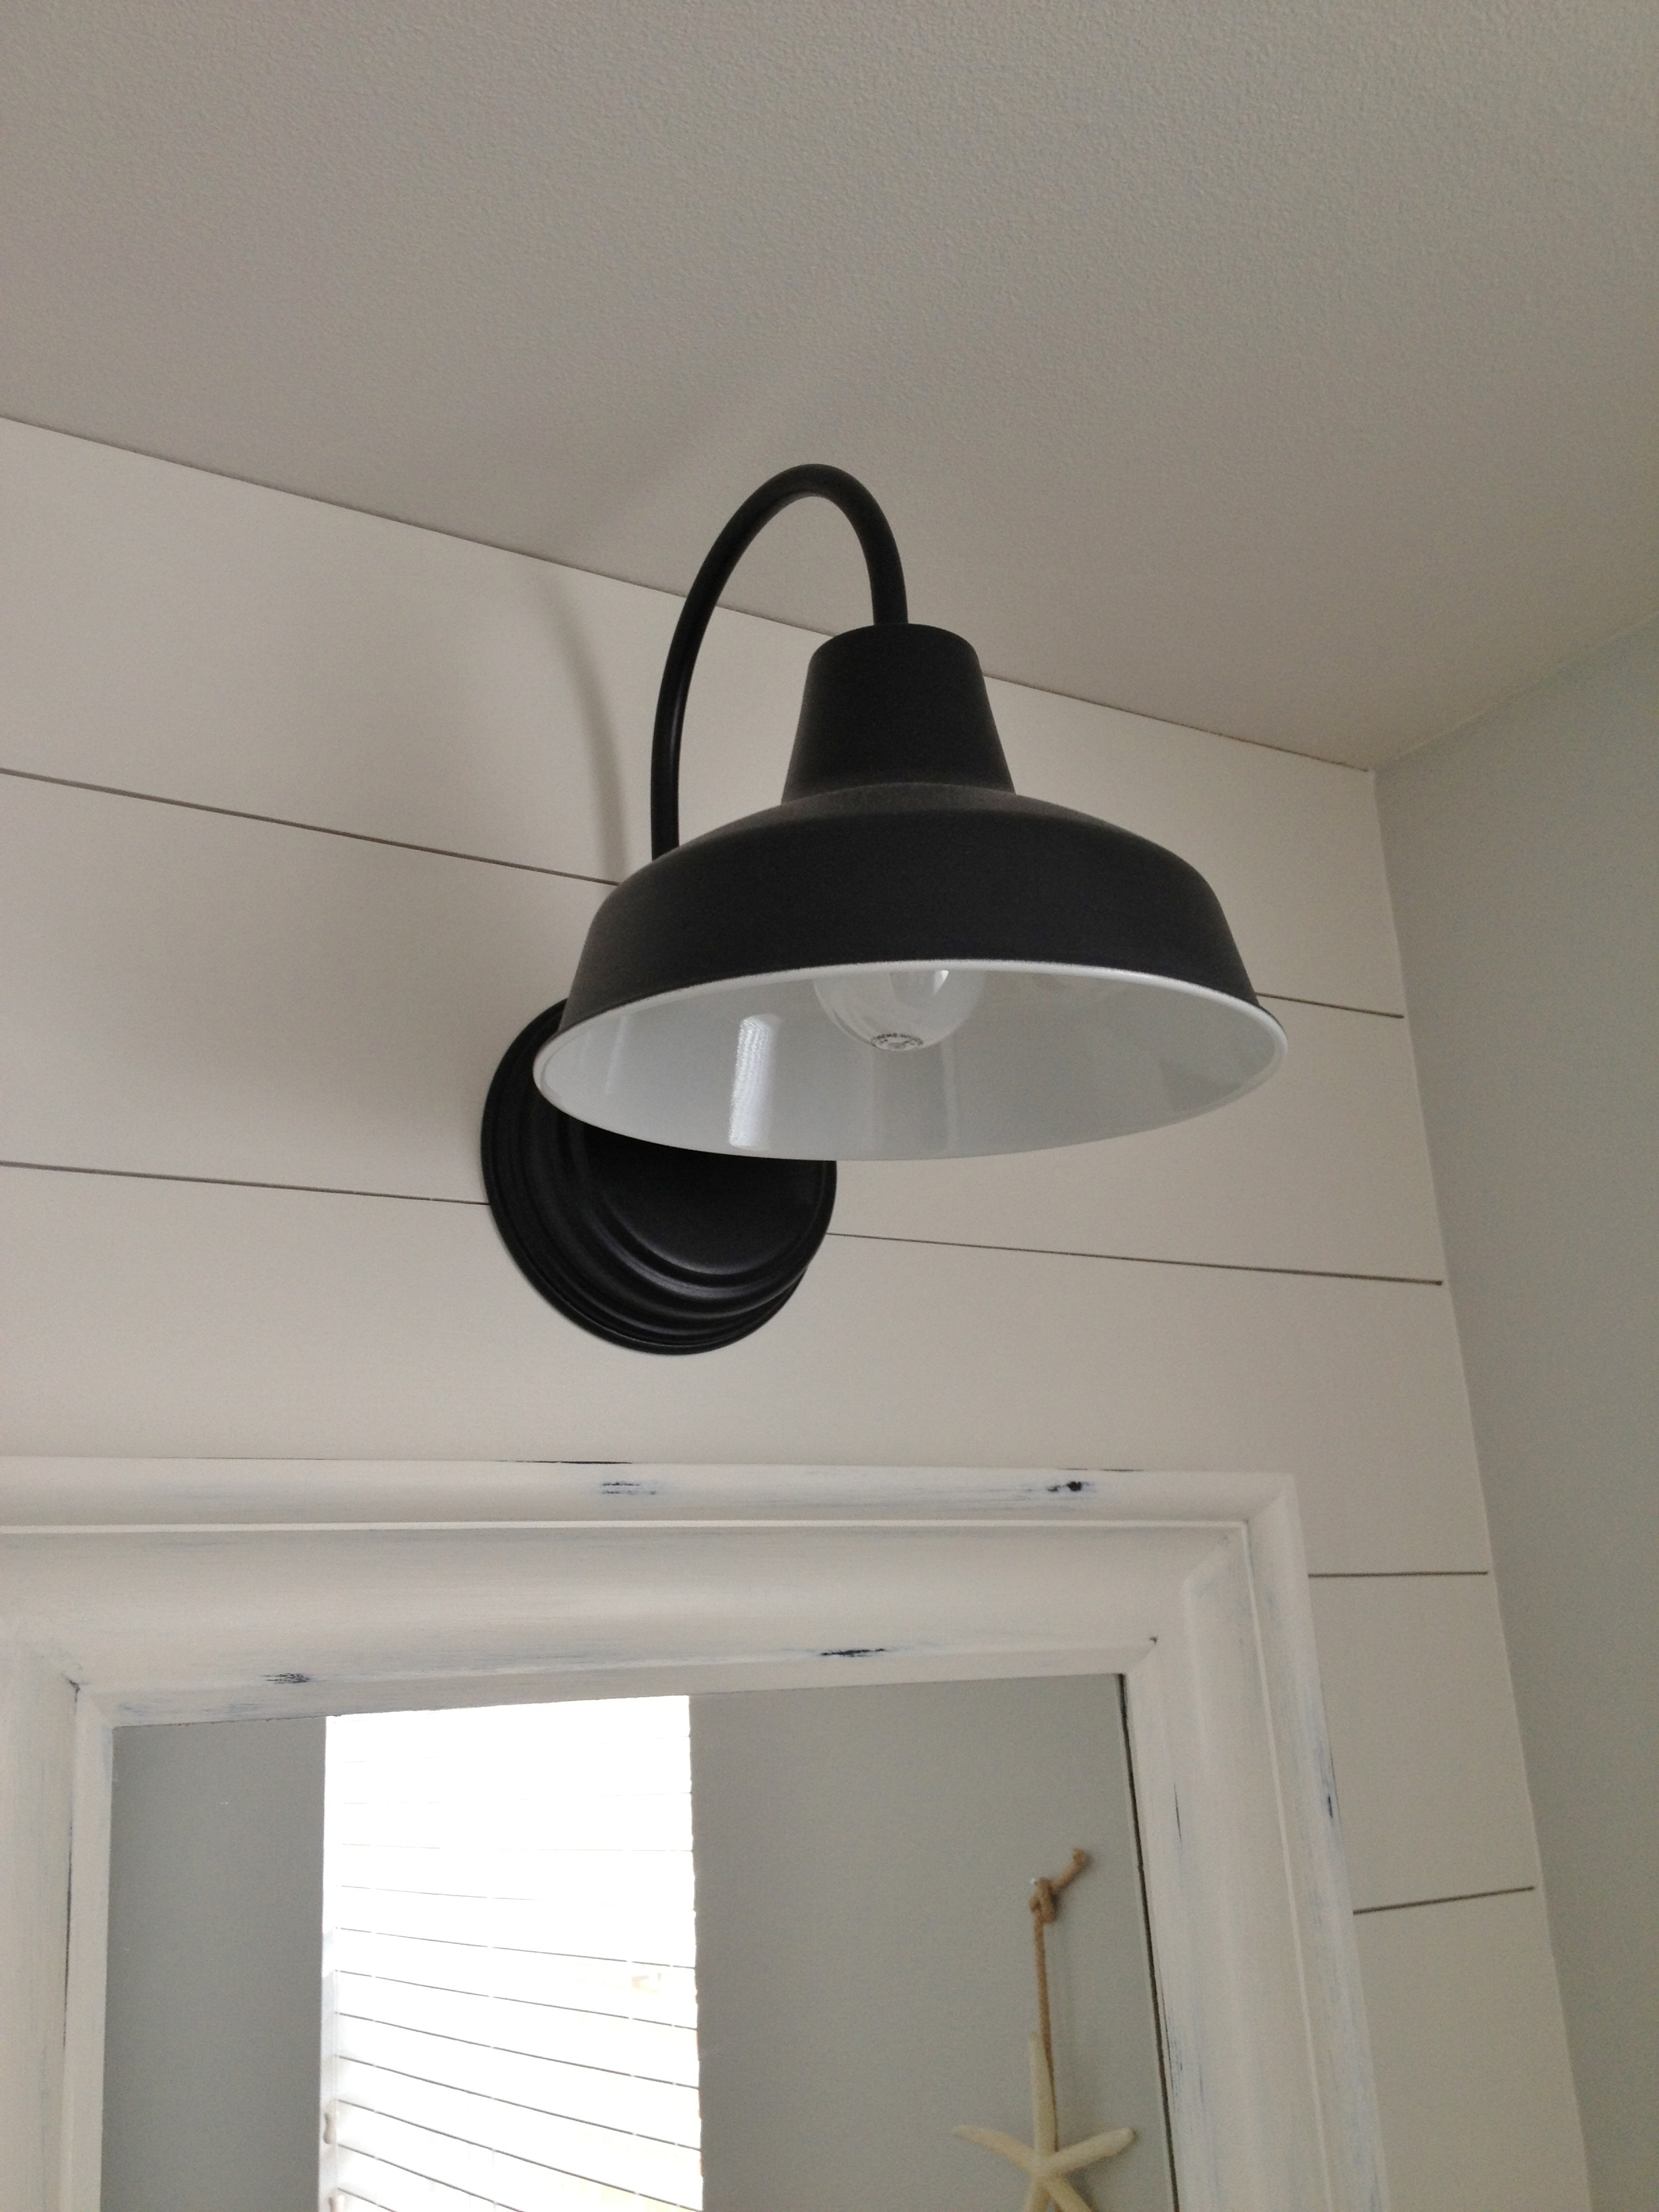 Farmhouse Outdoor Wall Lighting Within Best And Newest Barn Wall Sconce Lends Farmhouse Look To Powder Room Remake (View 5 of 20)